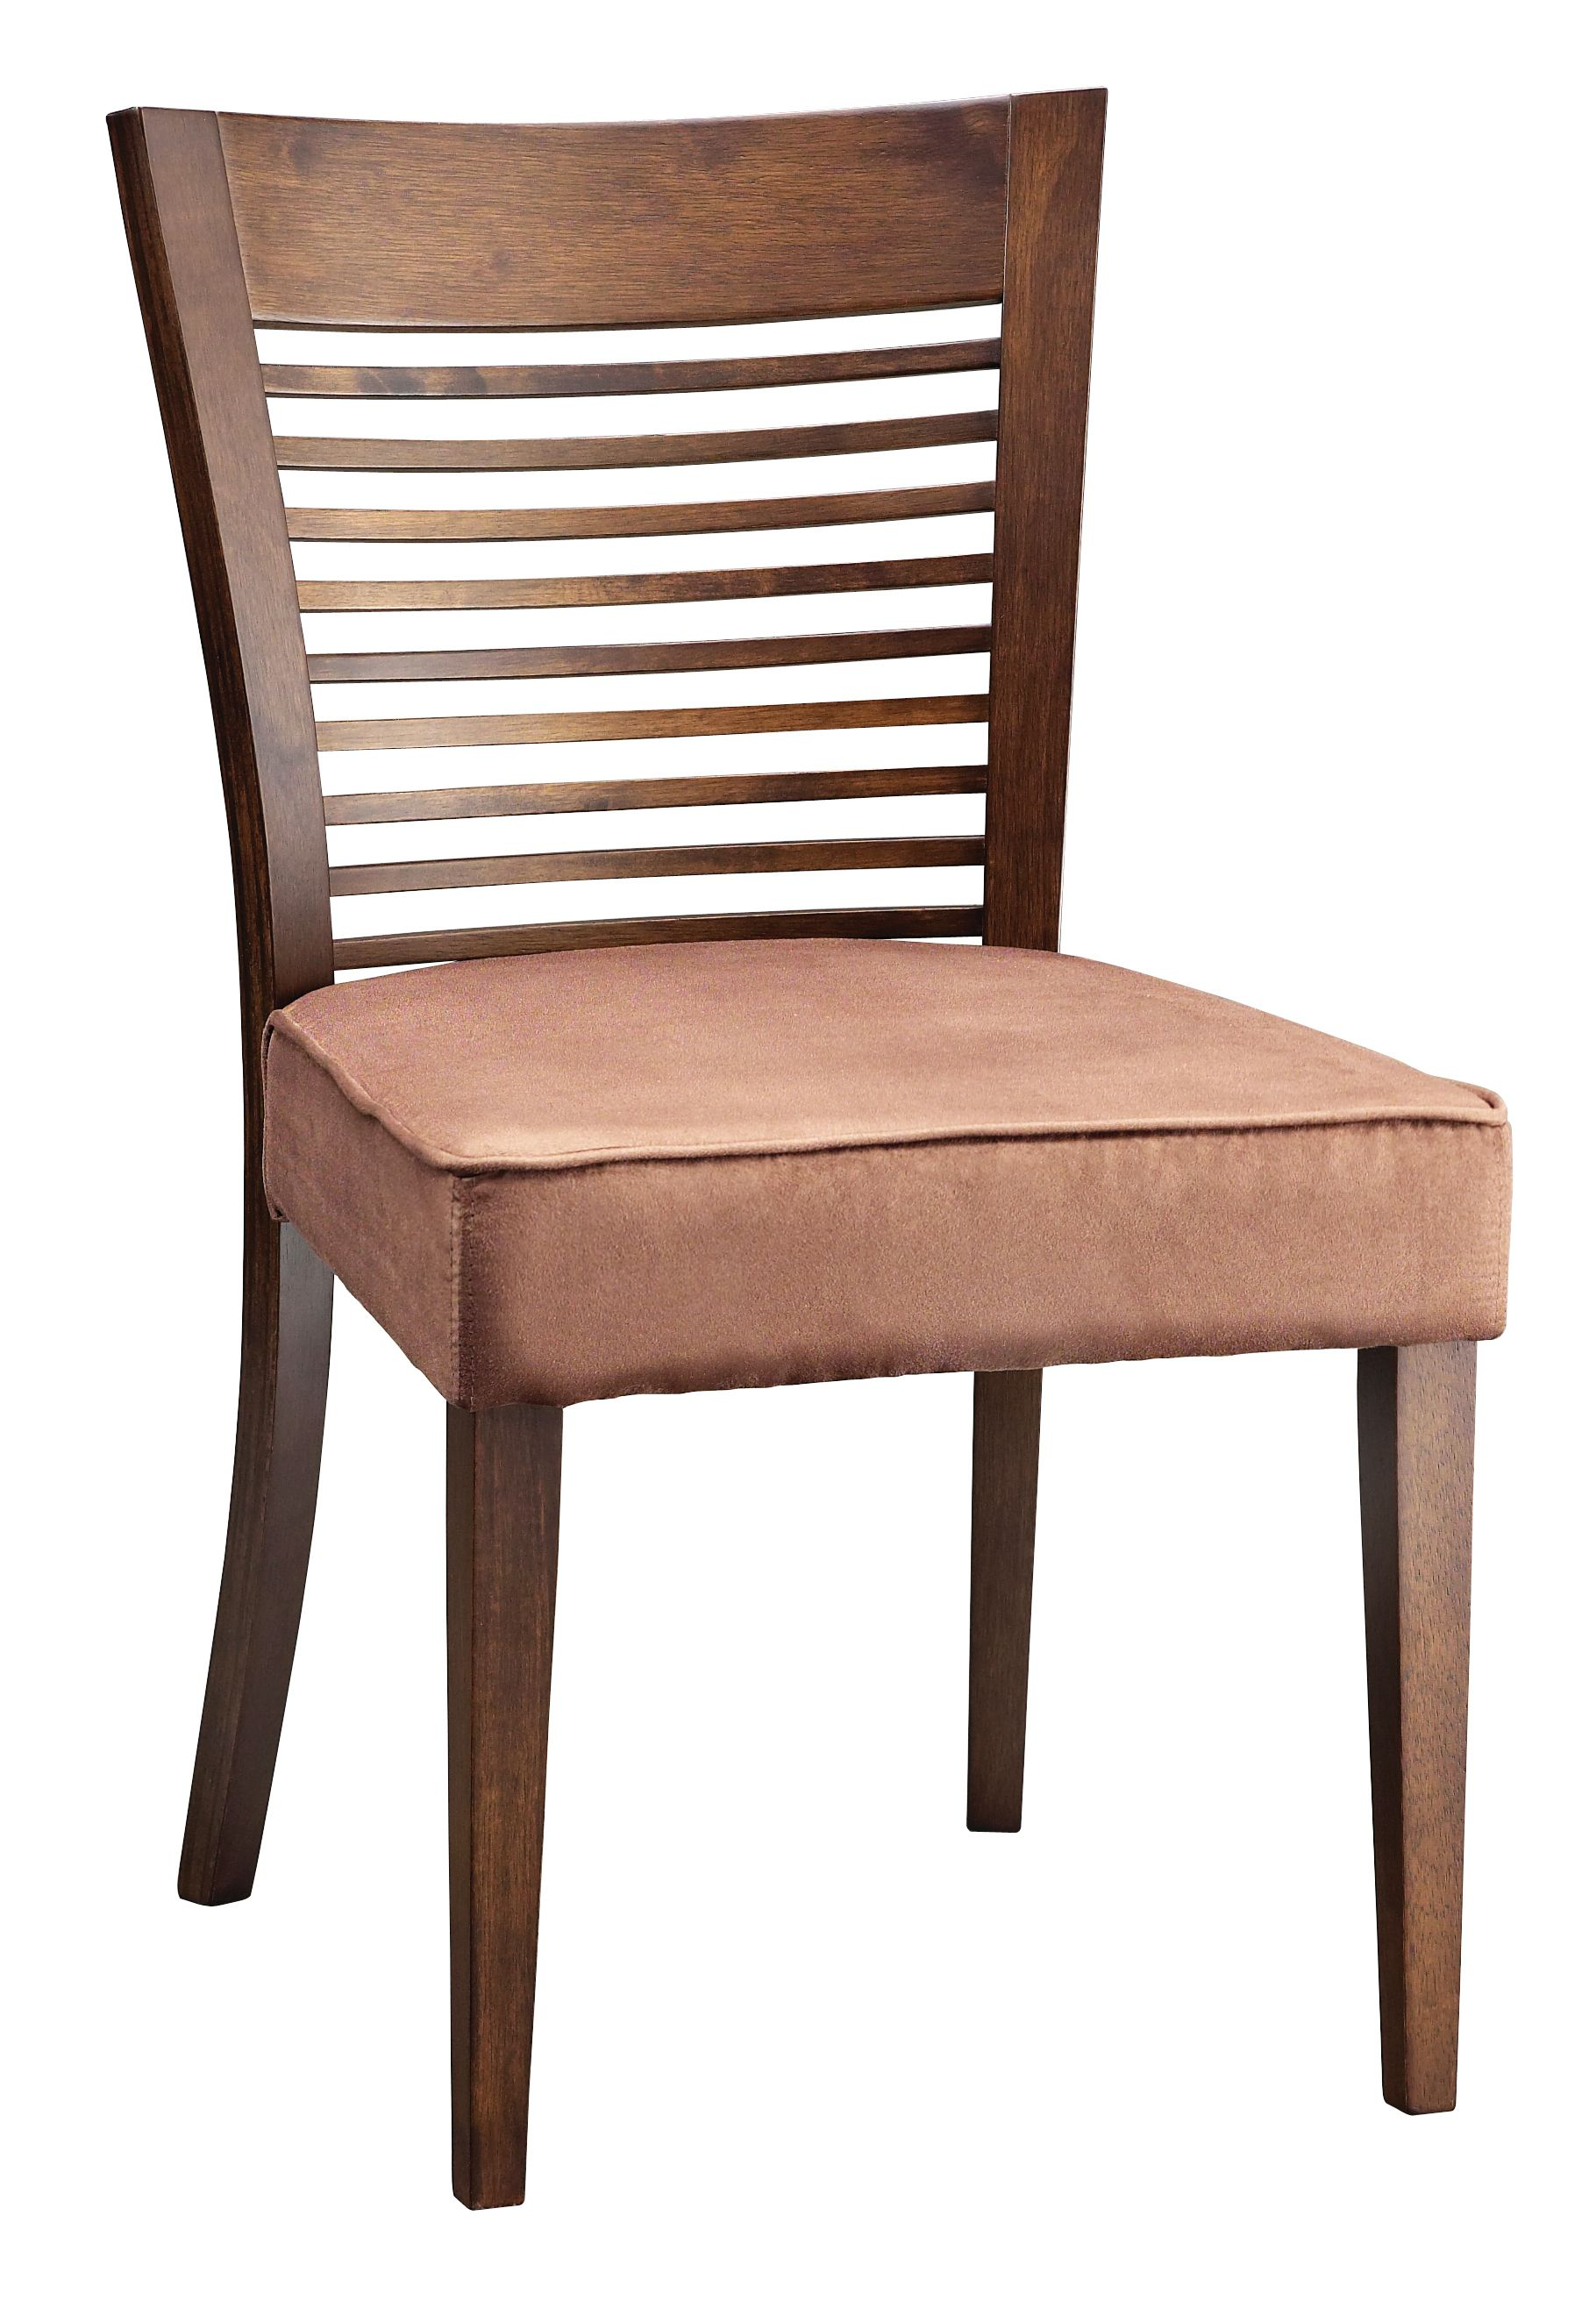 Dining Chair Price Casey Dining Chair Dimensions W50xd60xh85 Cm Price 7290 Buy